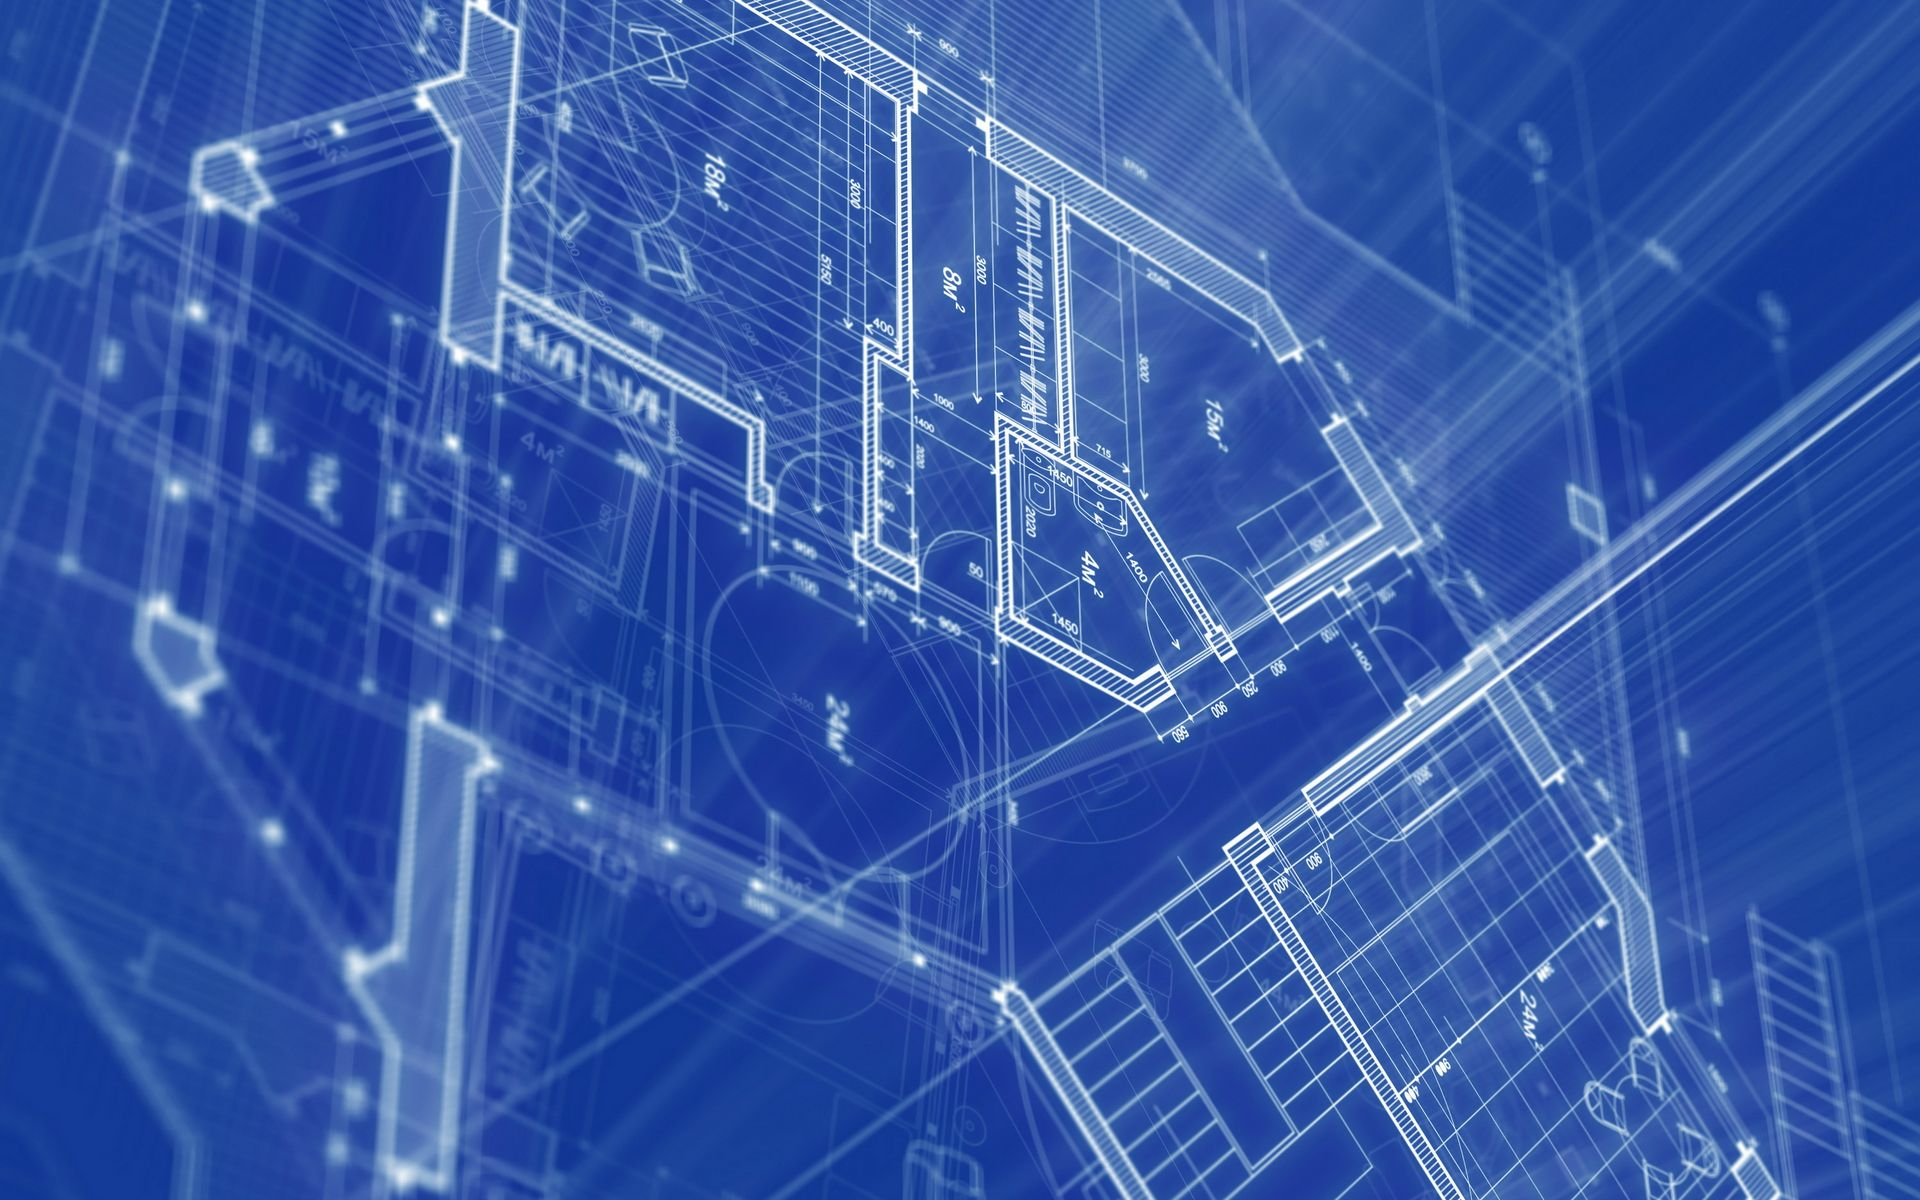 Blueprint architecture hd widescreen desktop wallpaper blueprint blueprint architecture hd widescreen desktop wallpaper malvernweather